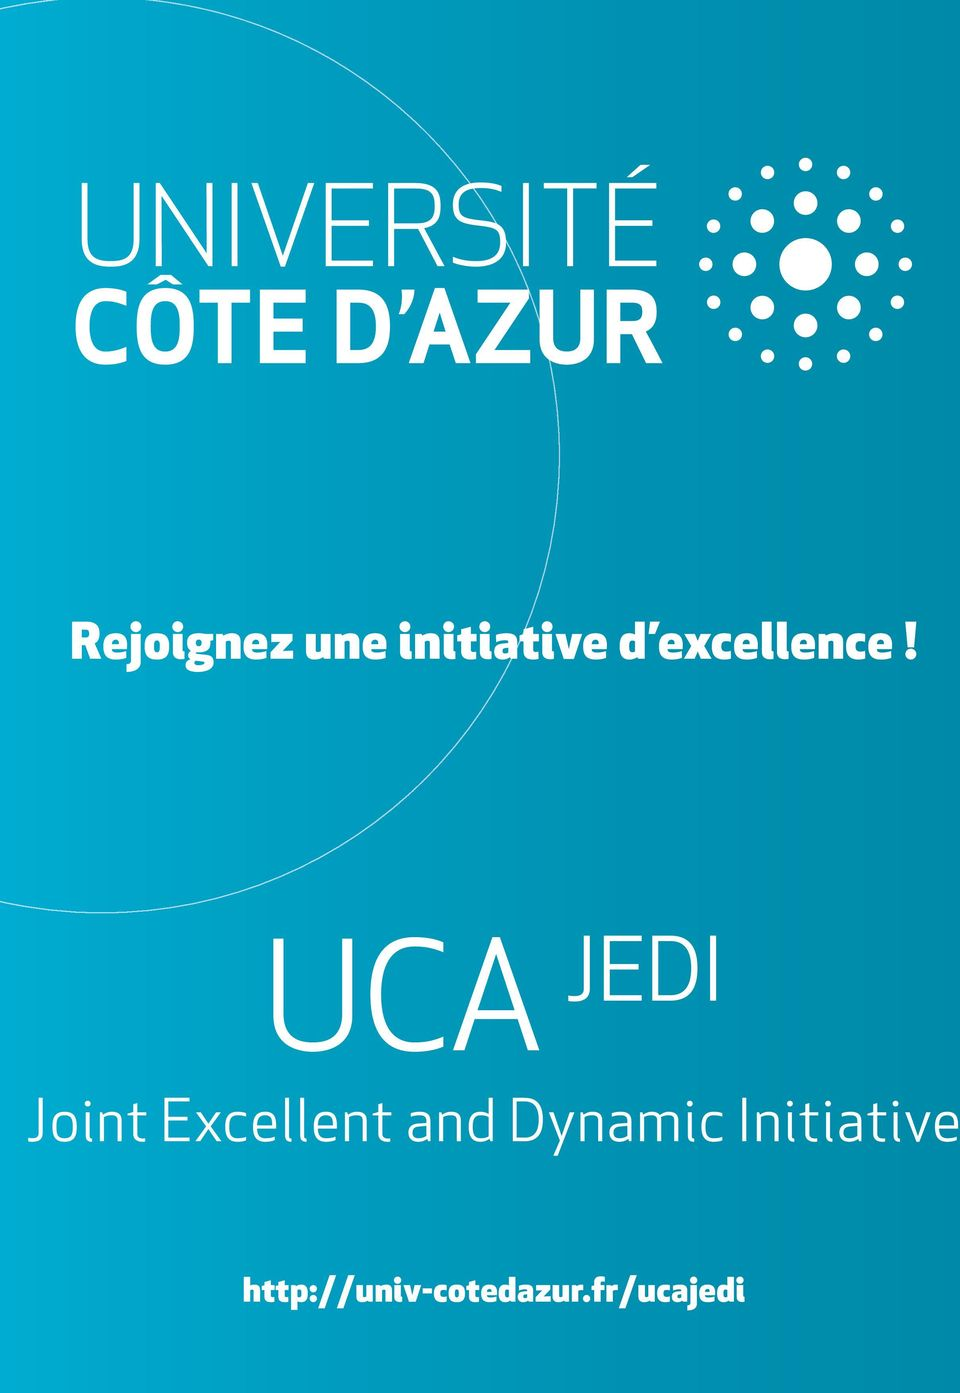 UCA JEDI Joint Excellent and